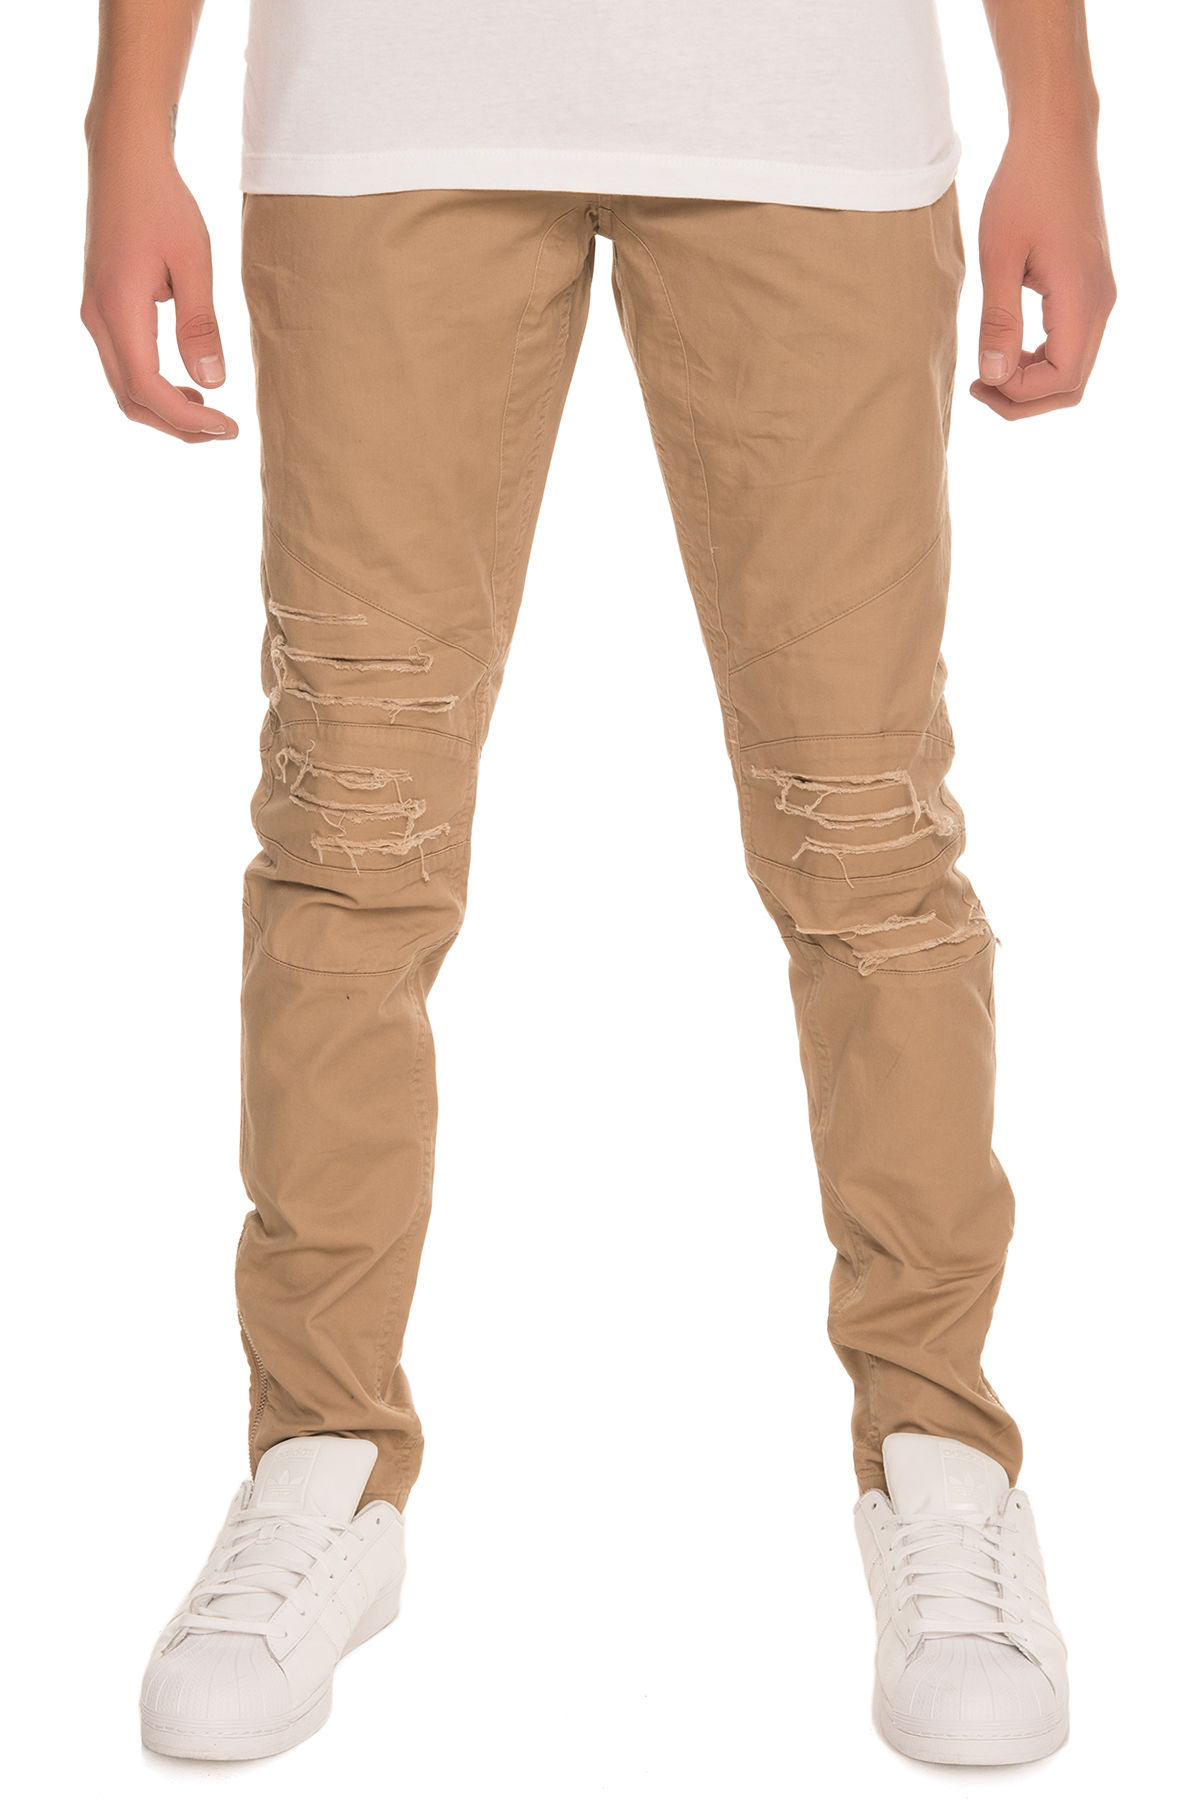 Image of The Distressed Biker Pants in Crme